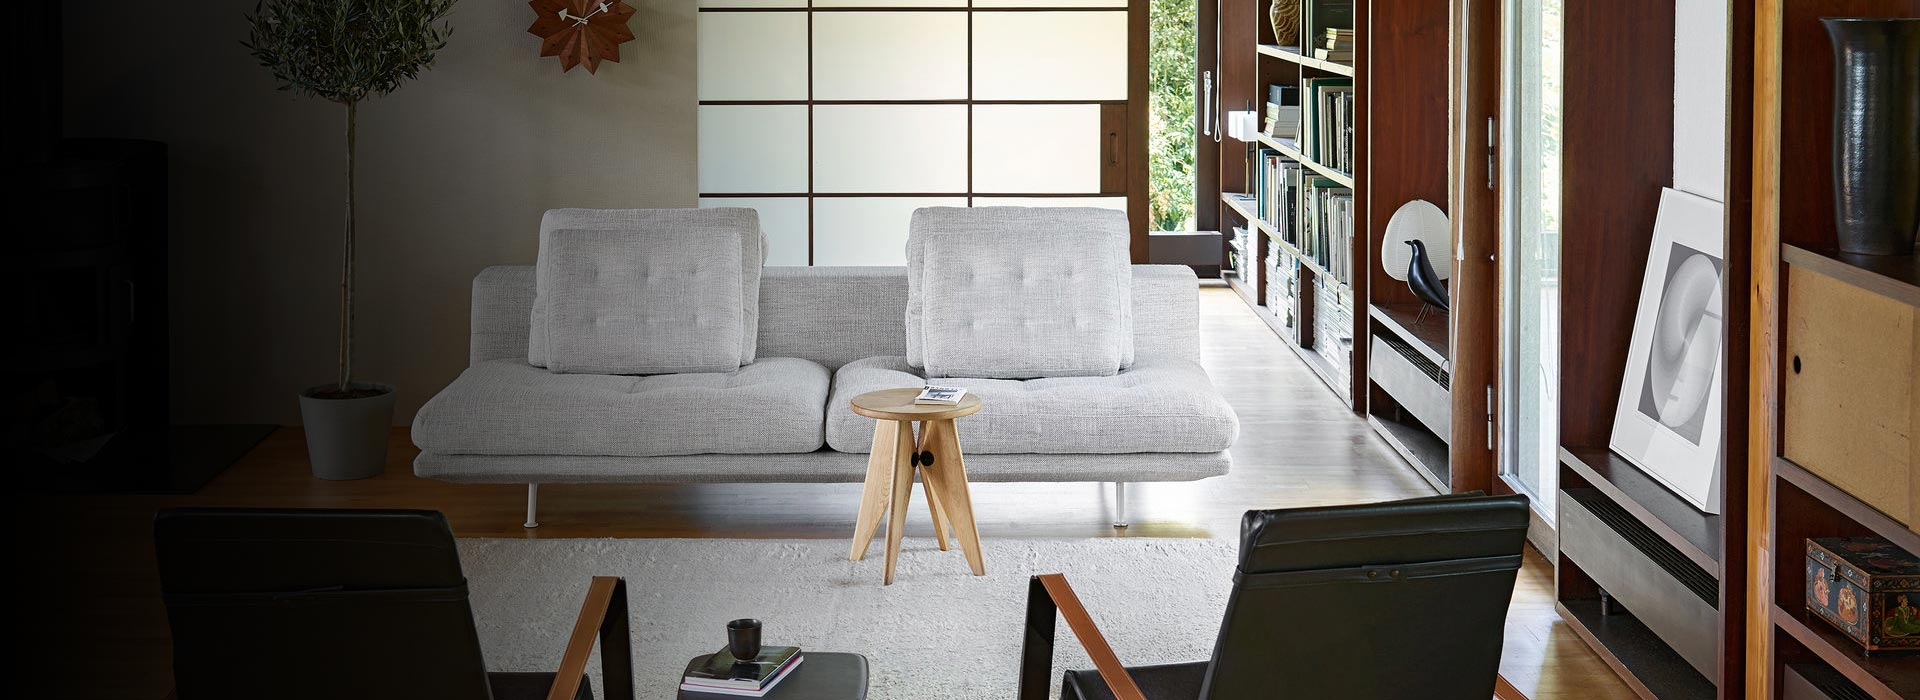 vitra grand sofa in berlin bei steidten+